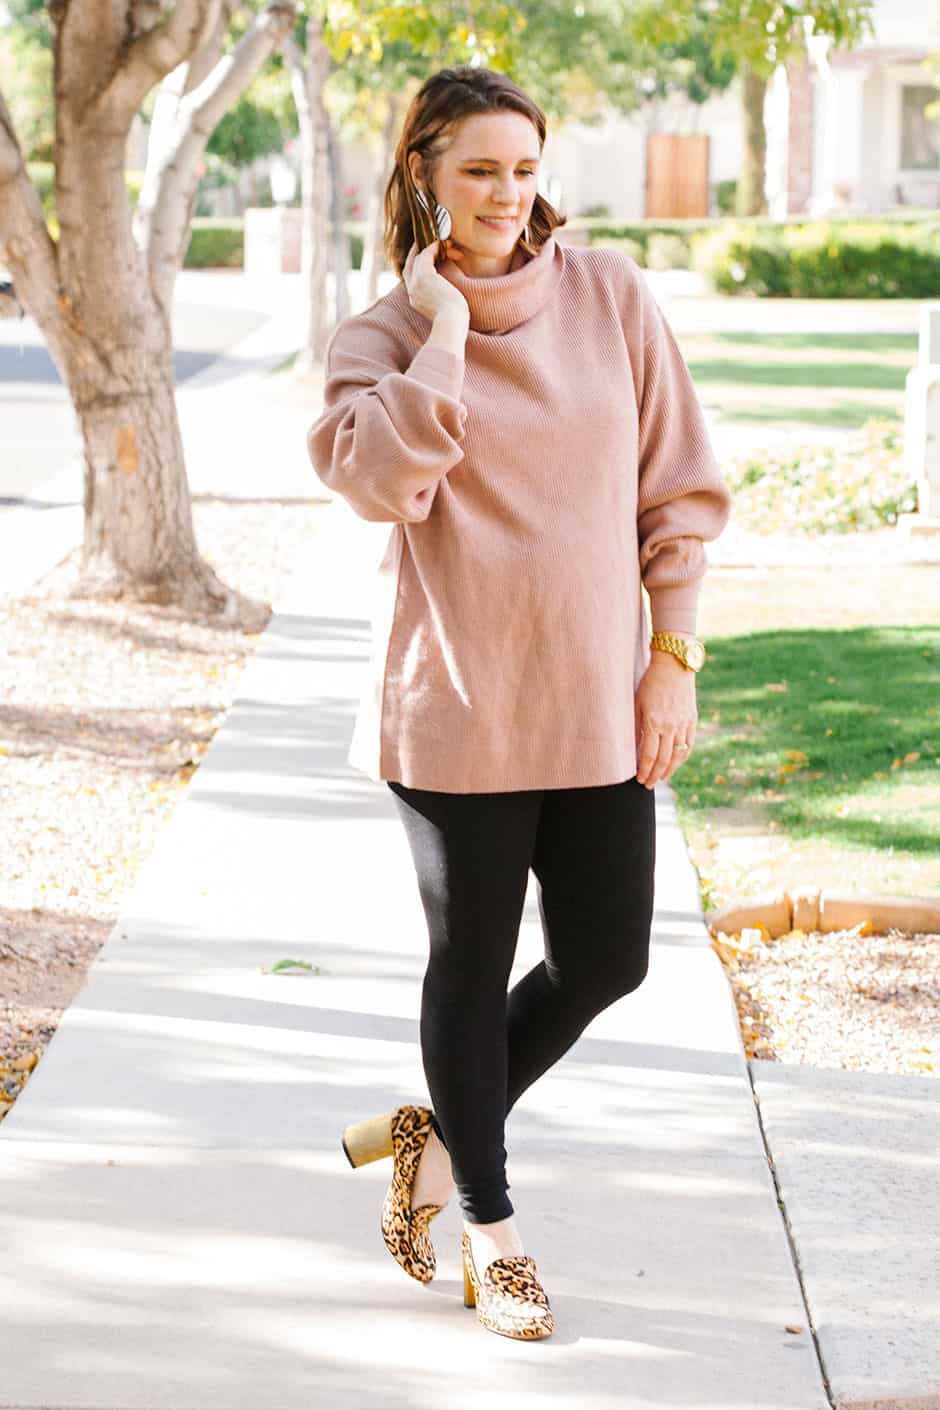 Looking For What To Wear With An Oversized Sweater